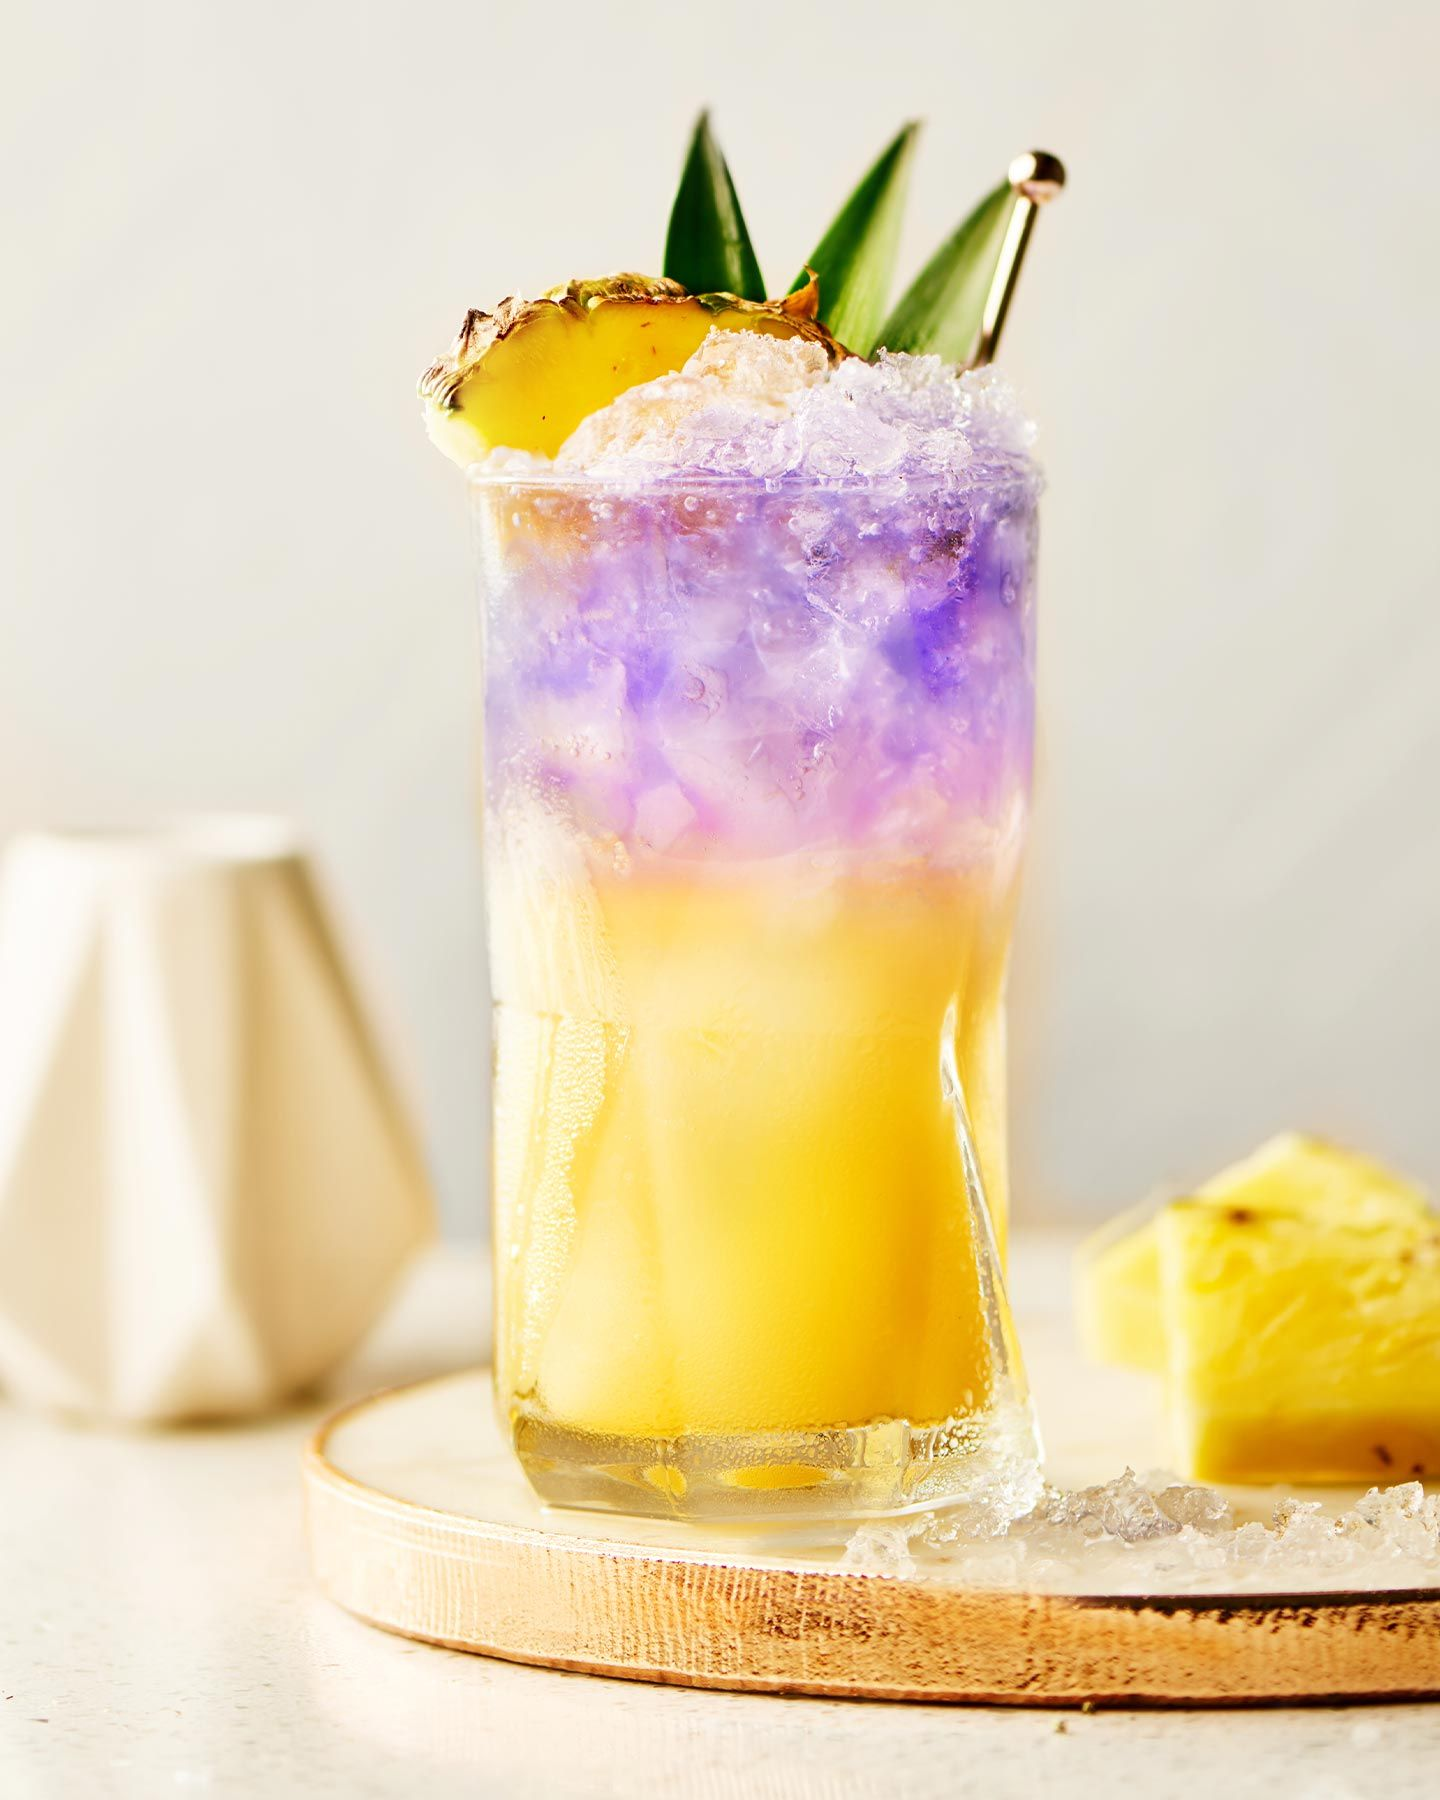 Every sip of this cocktail tastes like tropical sunshine